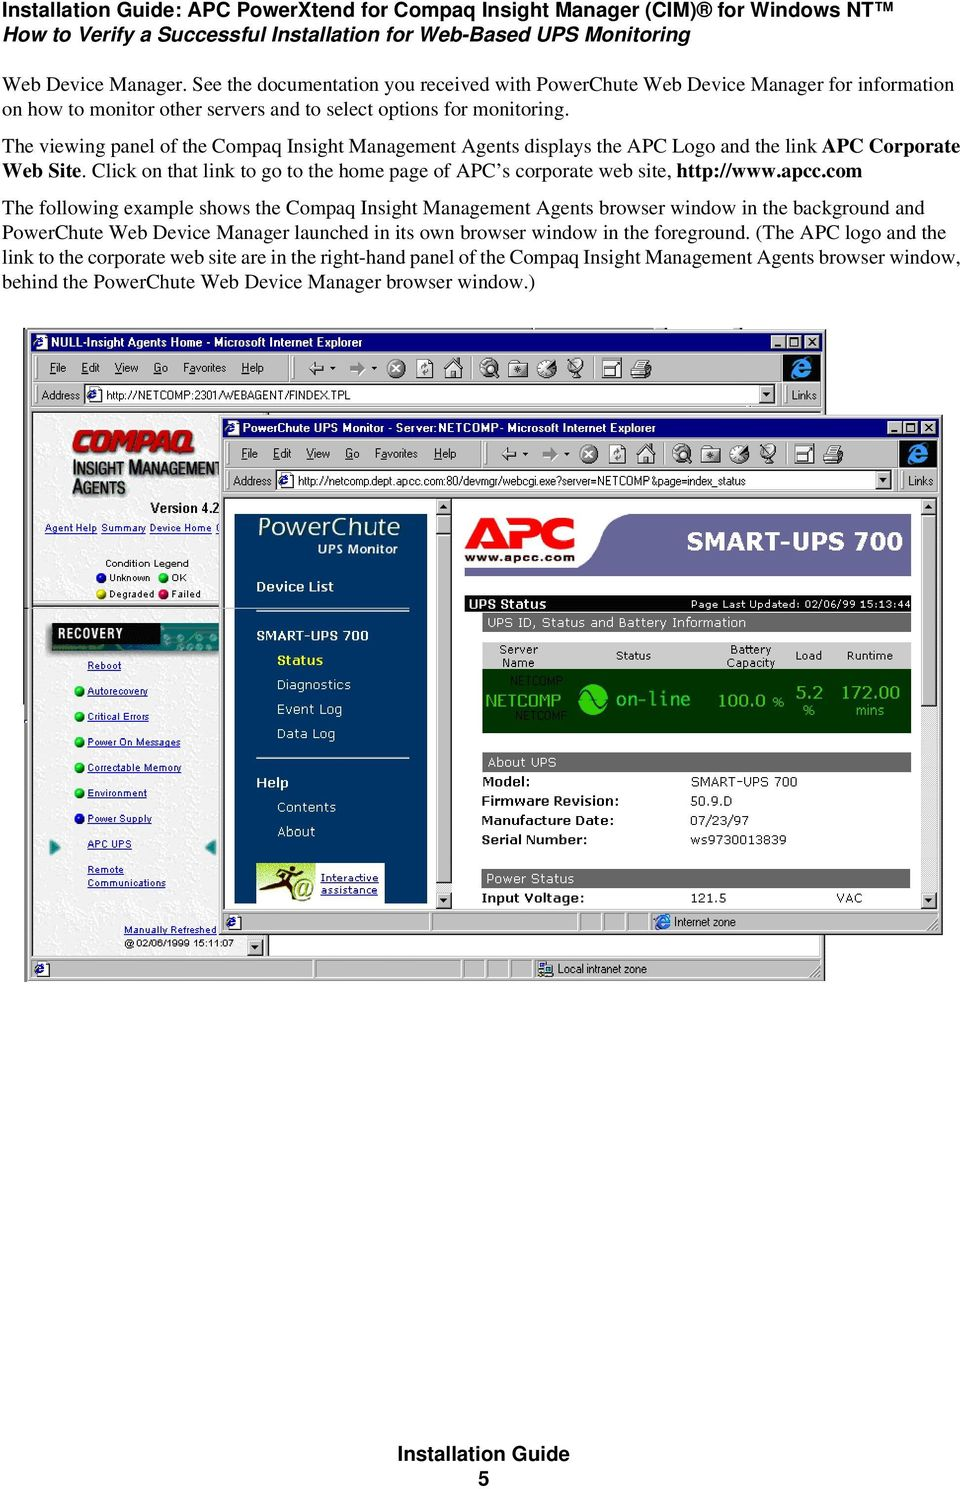 The viewing panel of the Compaq Insight Management Agents displays the APC Logo and the link APC Corporate Web Site. Click on that link to go to the home page of APC s corporate web site, http://www.